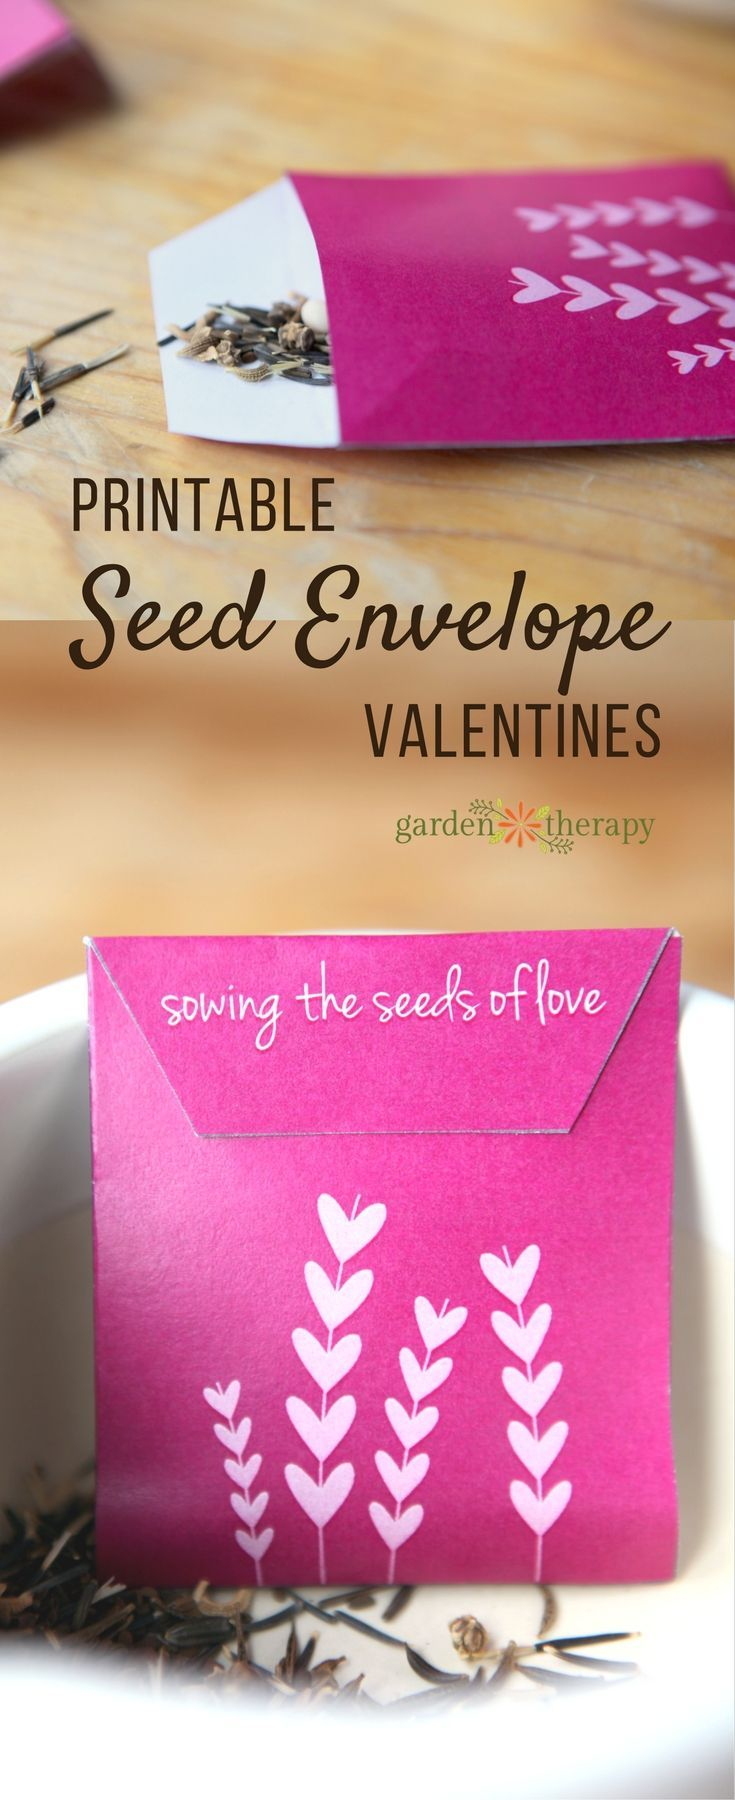 Sowing The Seeds Of Love With Seed Envelope Valentines